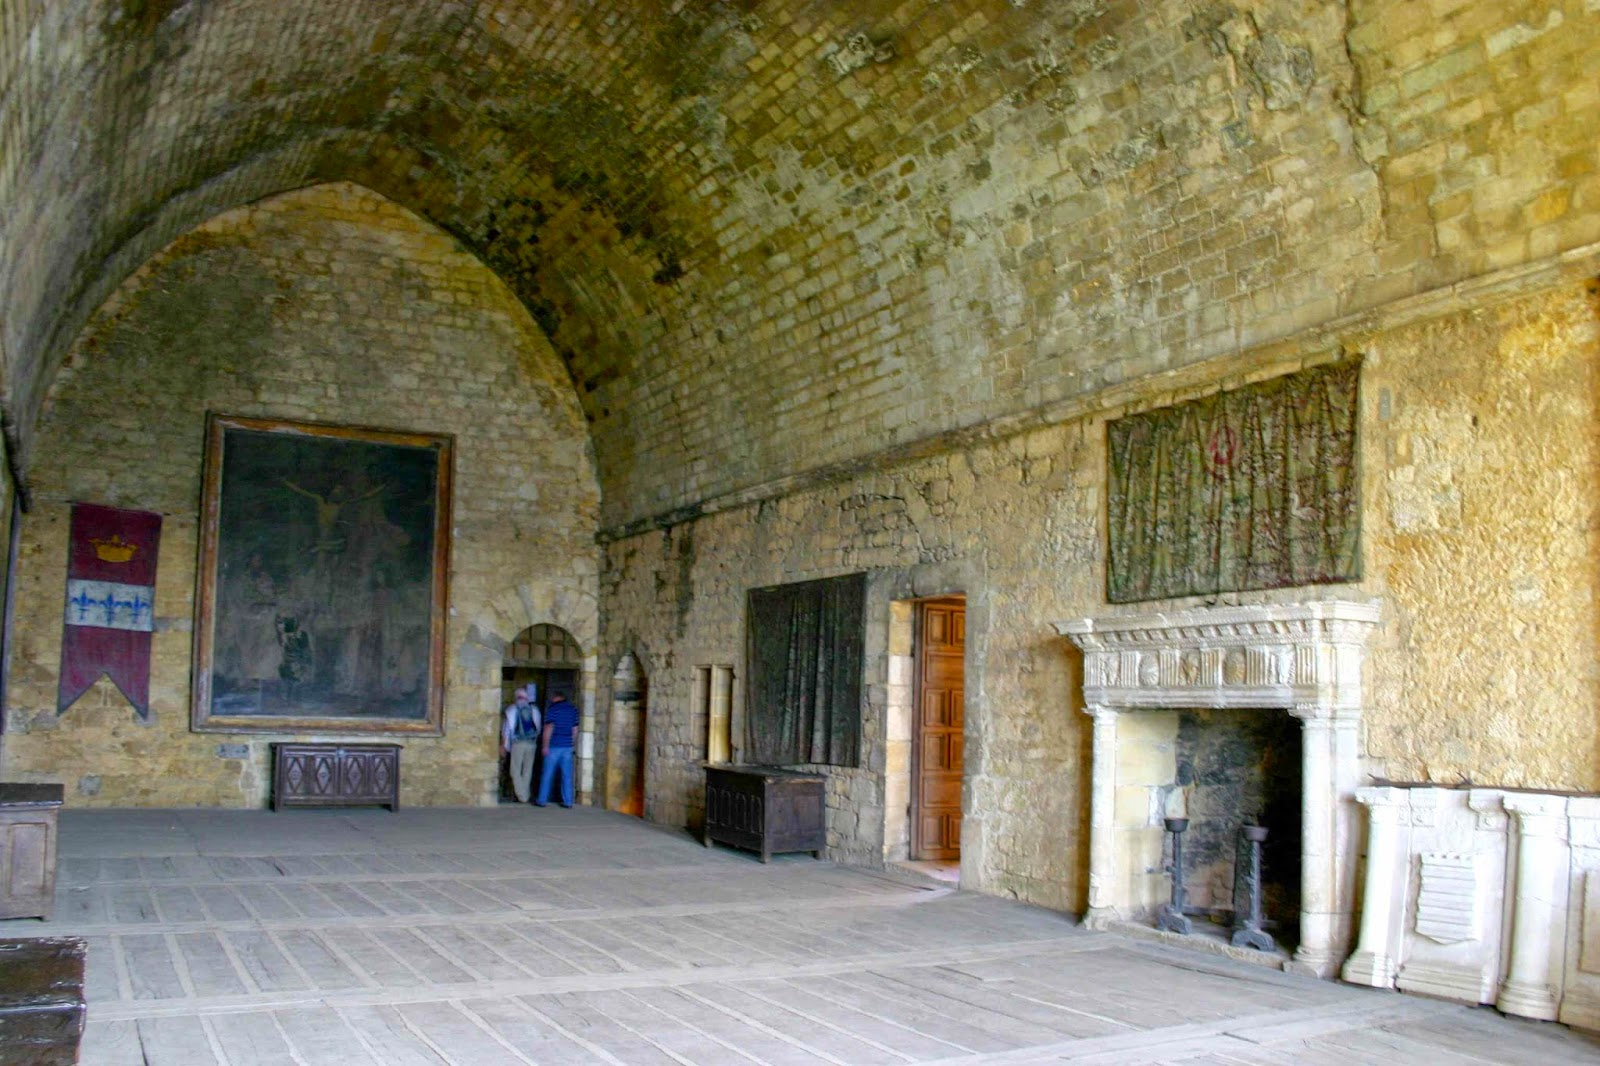 Life in the Middle Ages: Keeping Warm in the Middle Ages